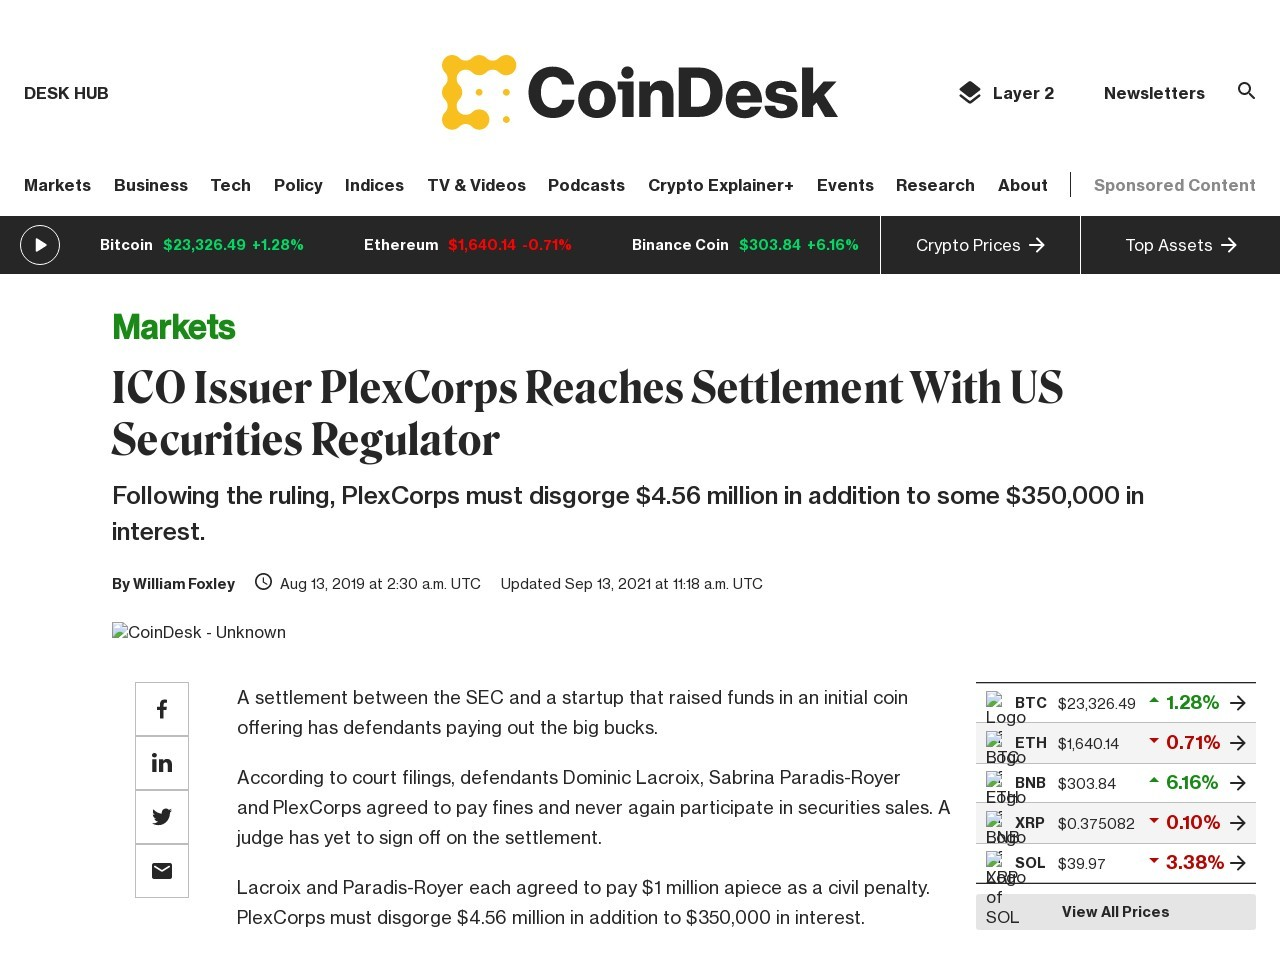 ICO Issuer PlexCorps Reaches Settlement With US Securities Regulator